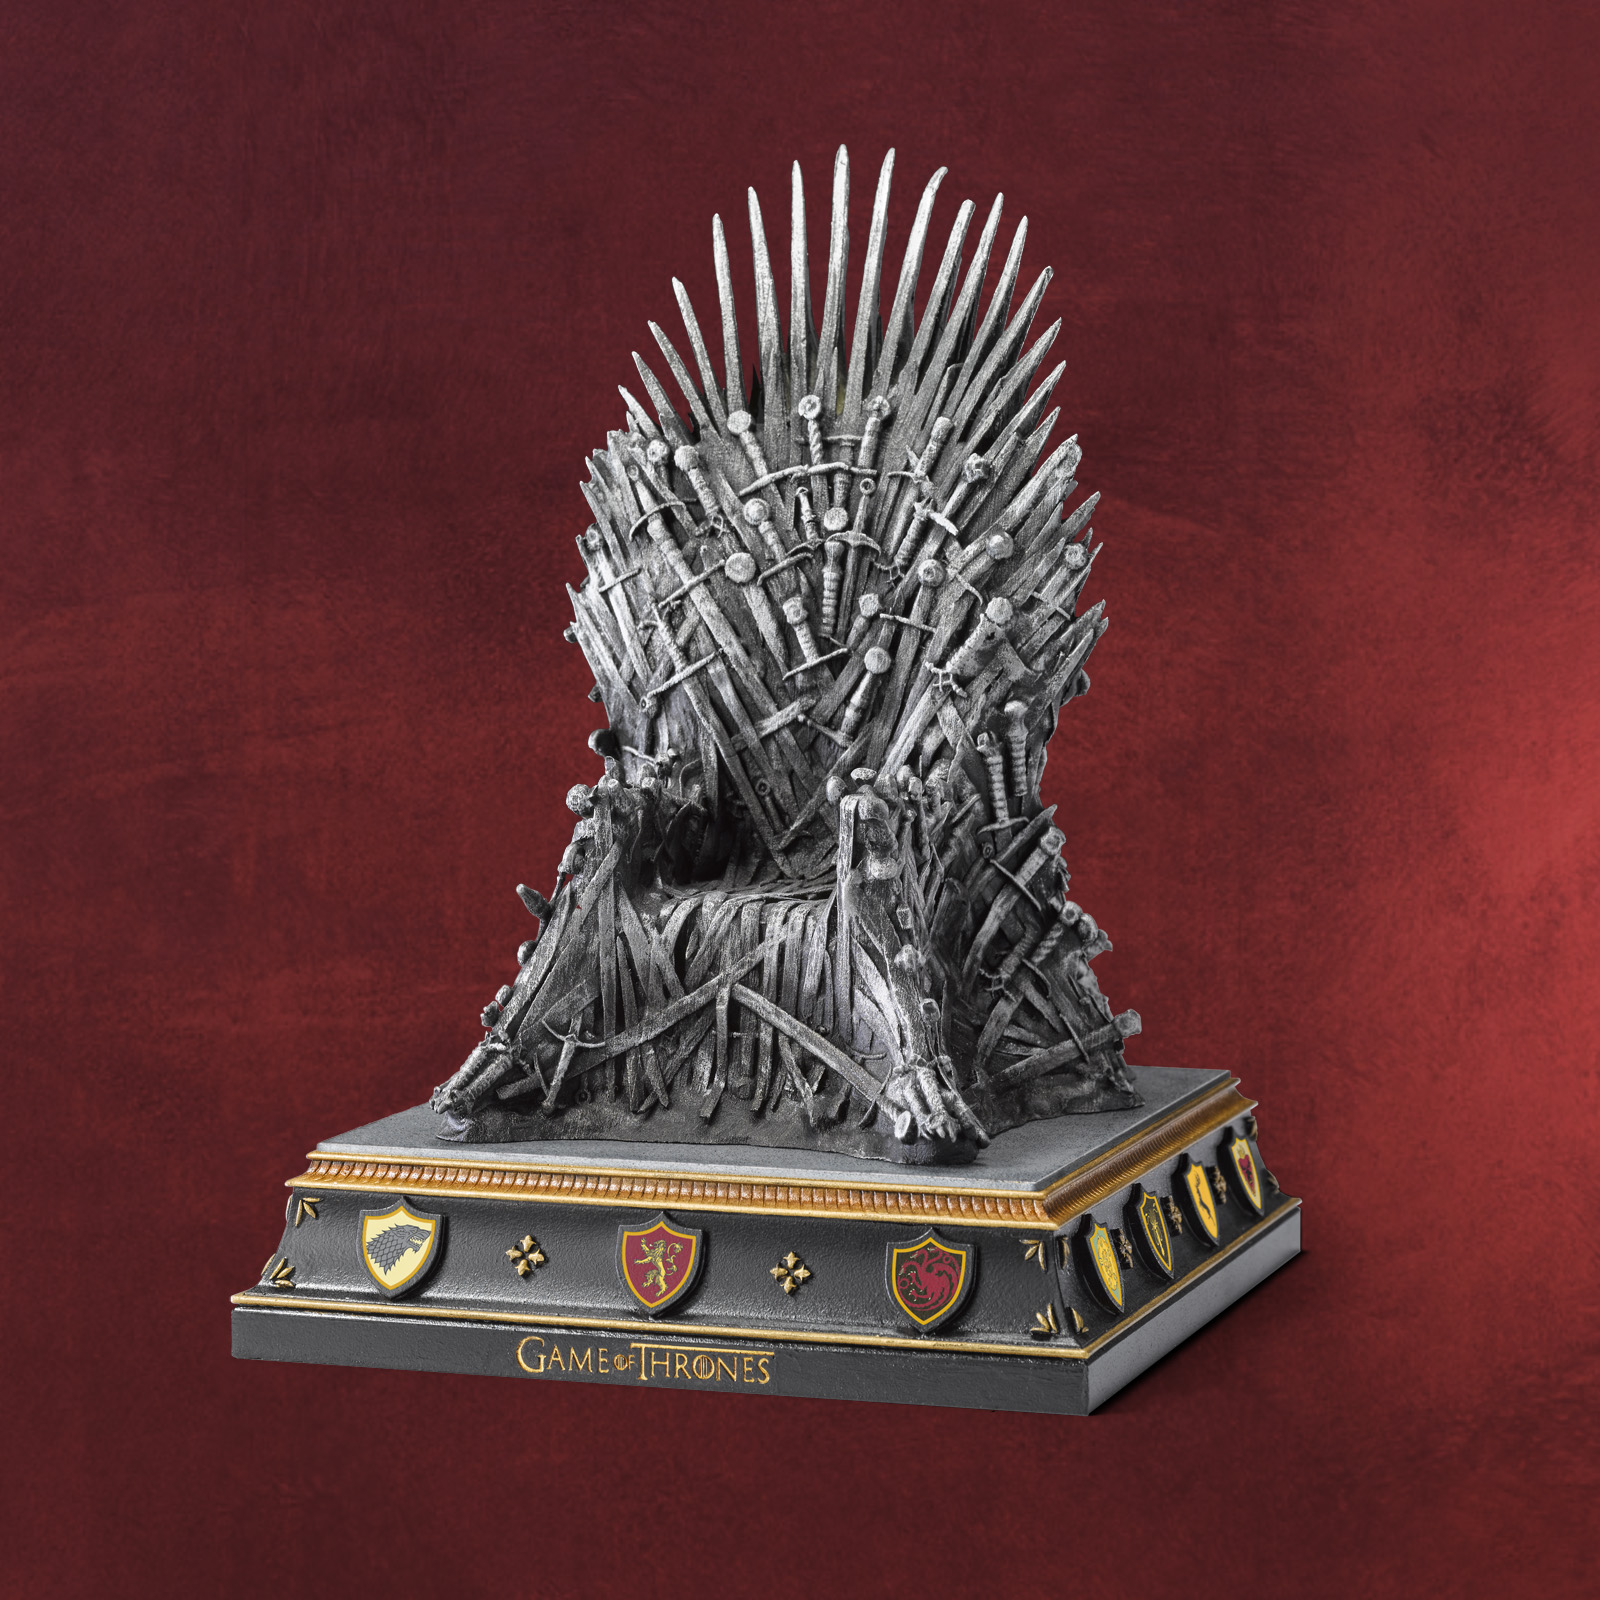 game of thrones eiserner thron buchst tze elbenwald. Black Bedroom Furniture Sets. Home Design Ideas